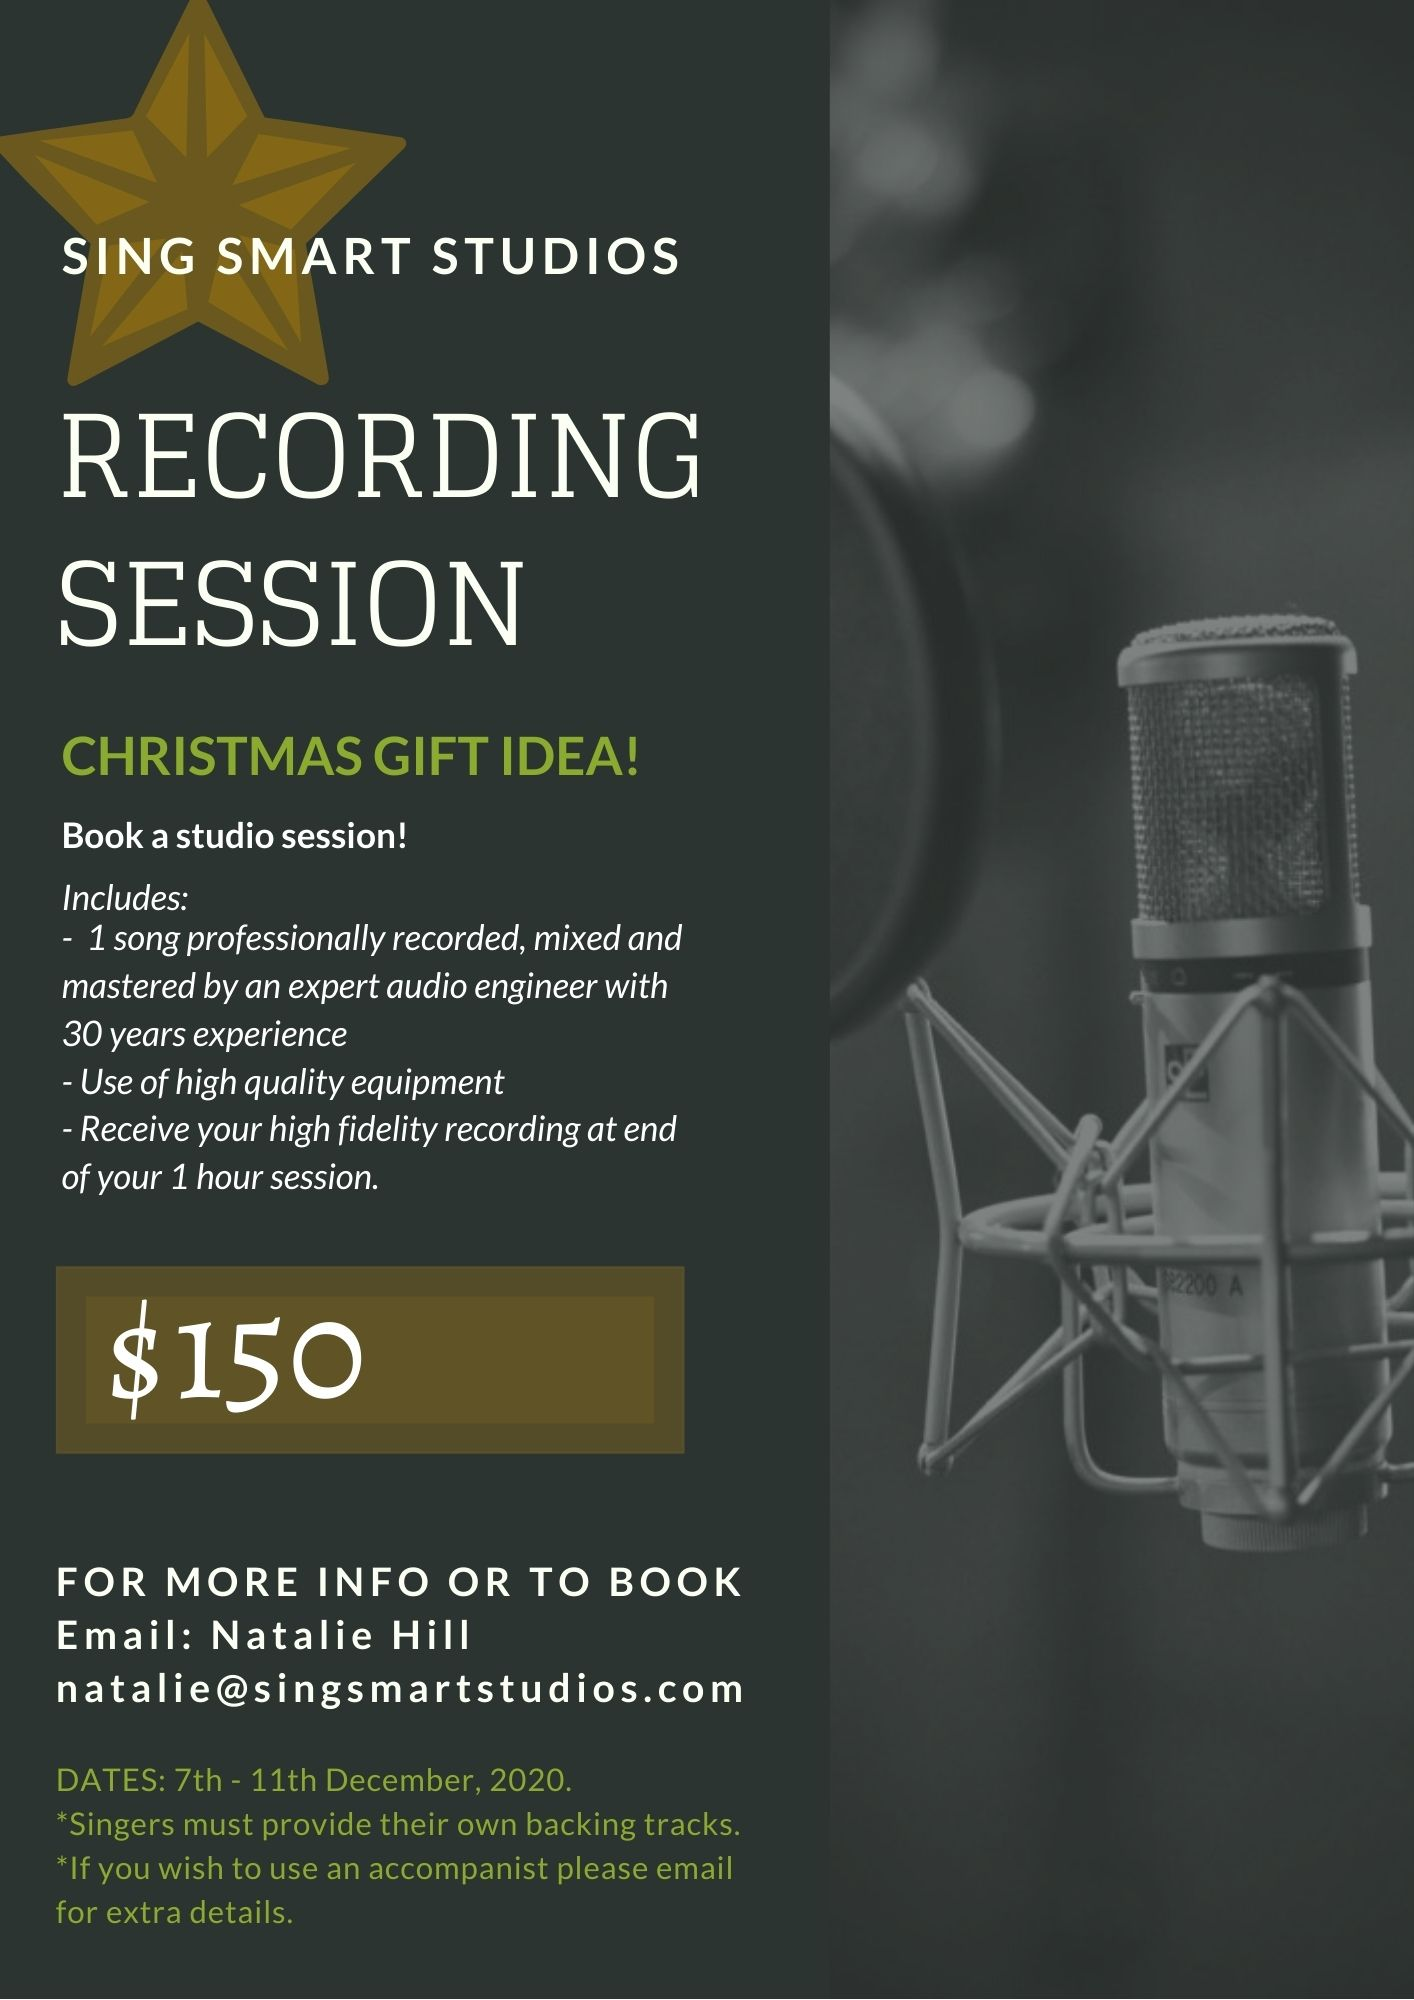 RECORDING SESSIONS NOW AVAILABLE!